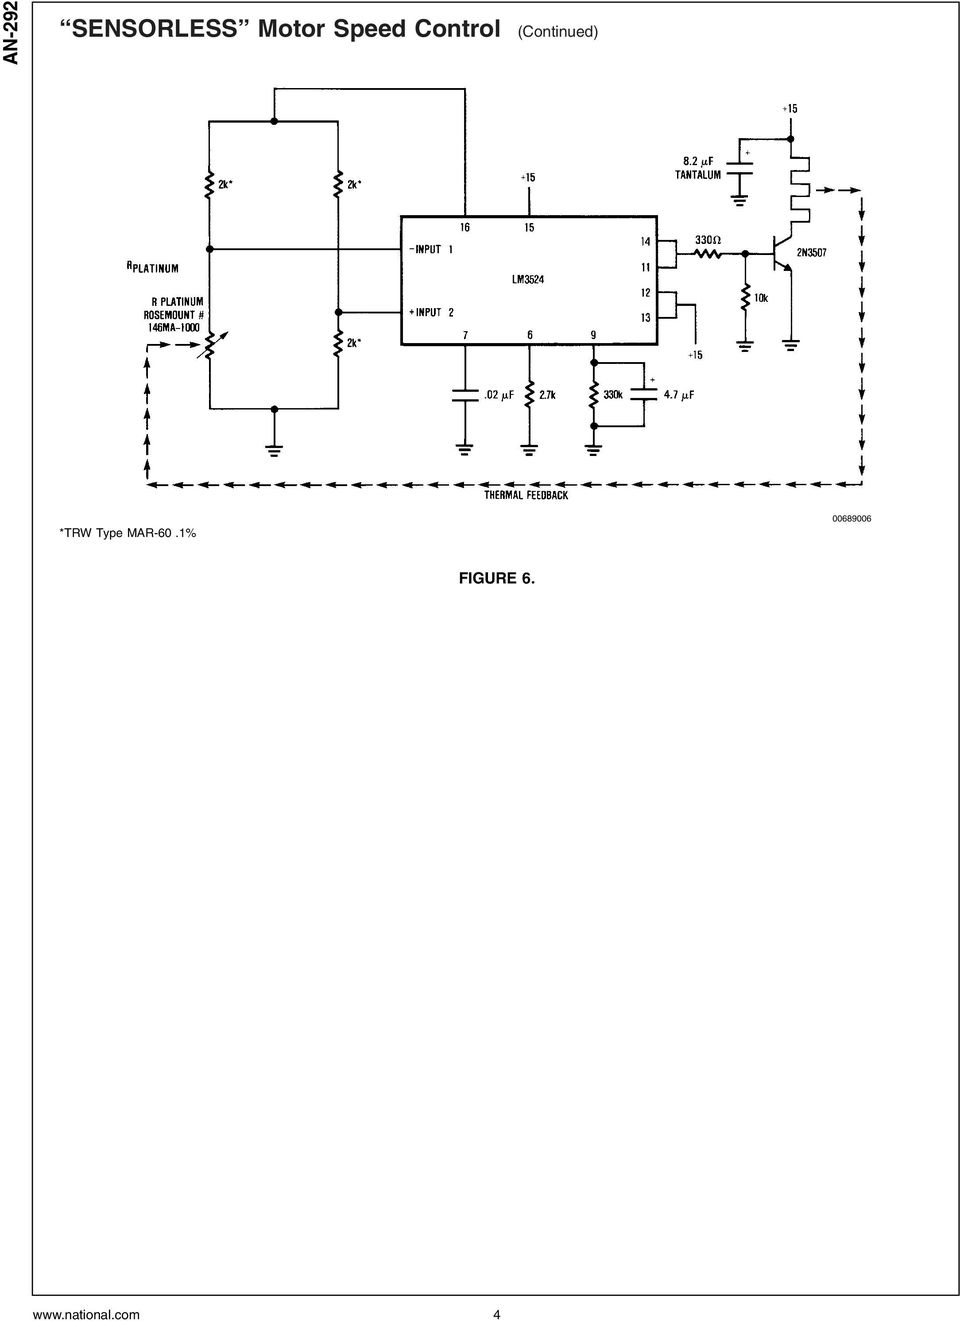 Figure 2 3 Pdf Circuits Lm3909 Led Flasher Simple 555 One Transistor Trw Type Mar 60